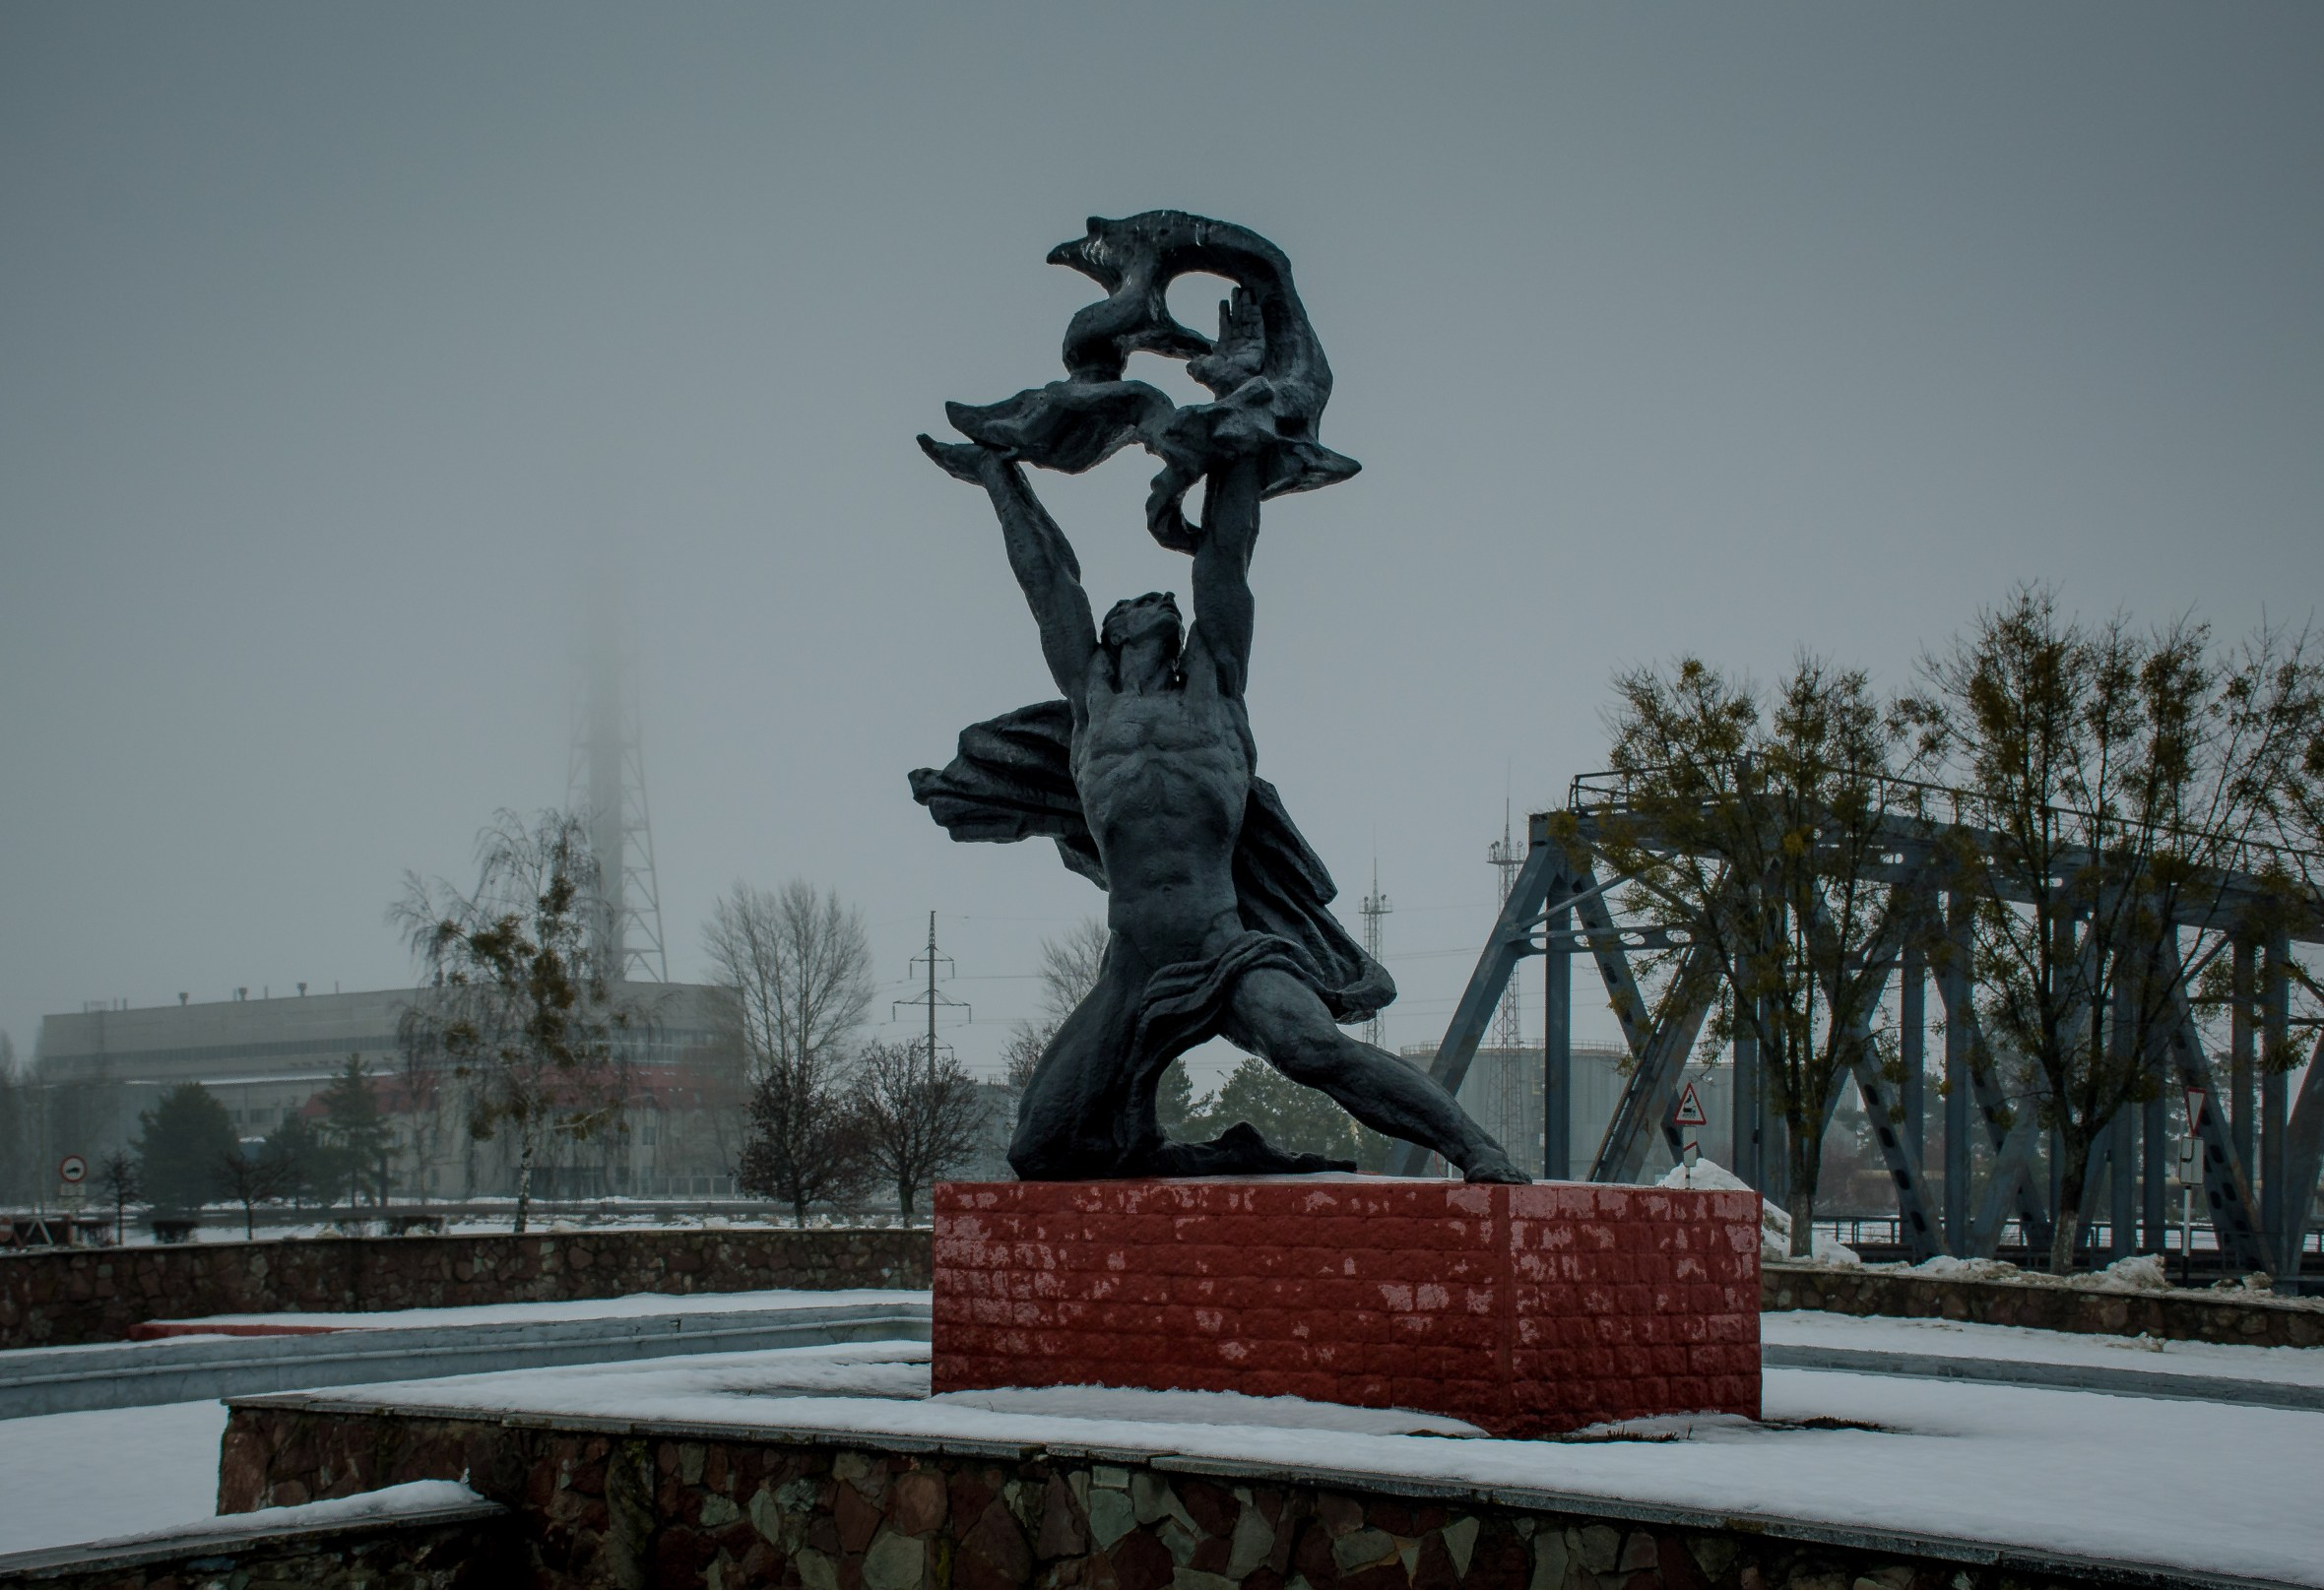 Statue of Prometheus in Chernobyl